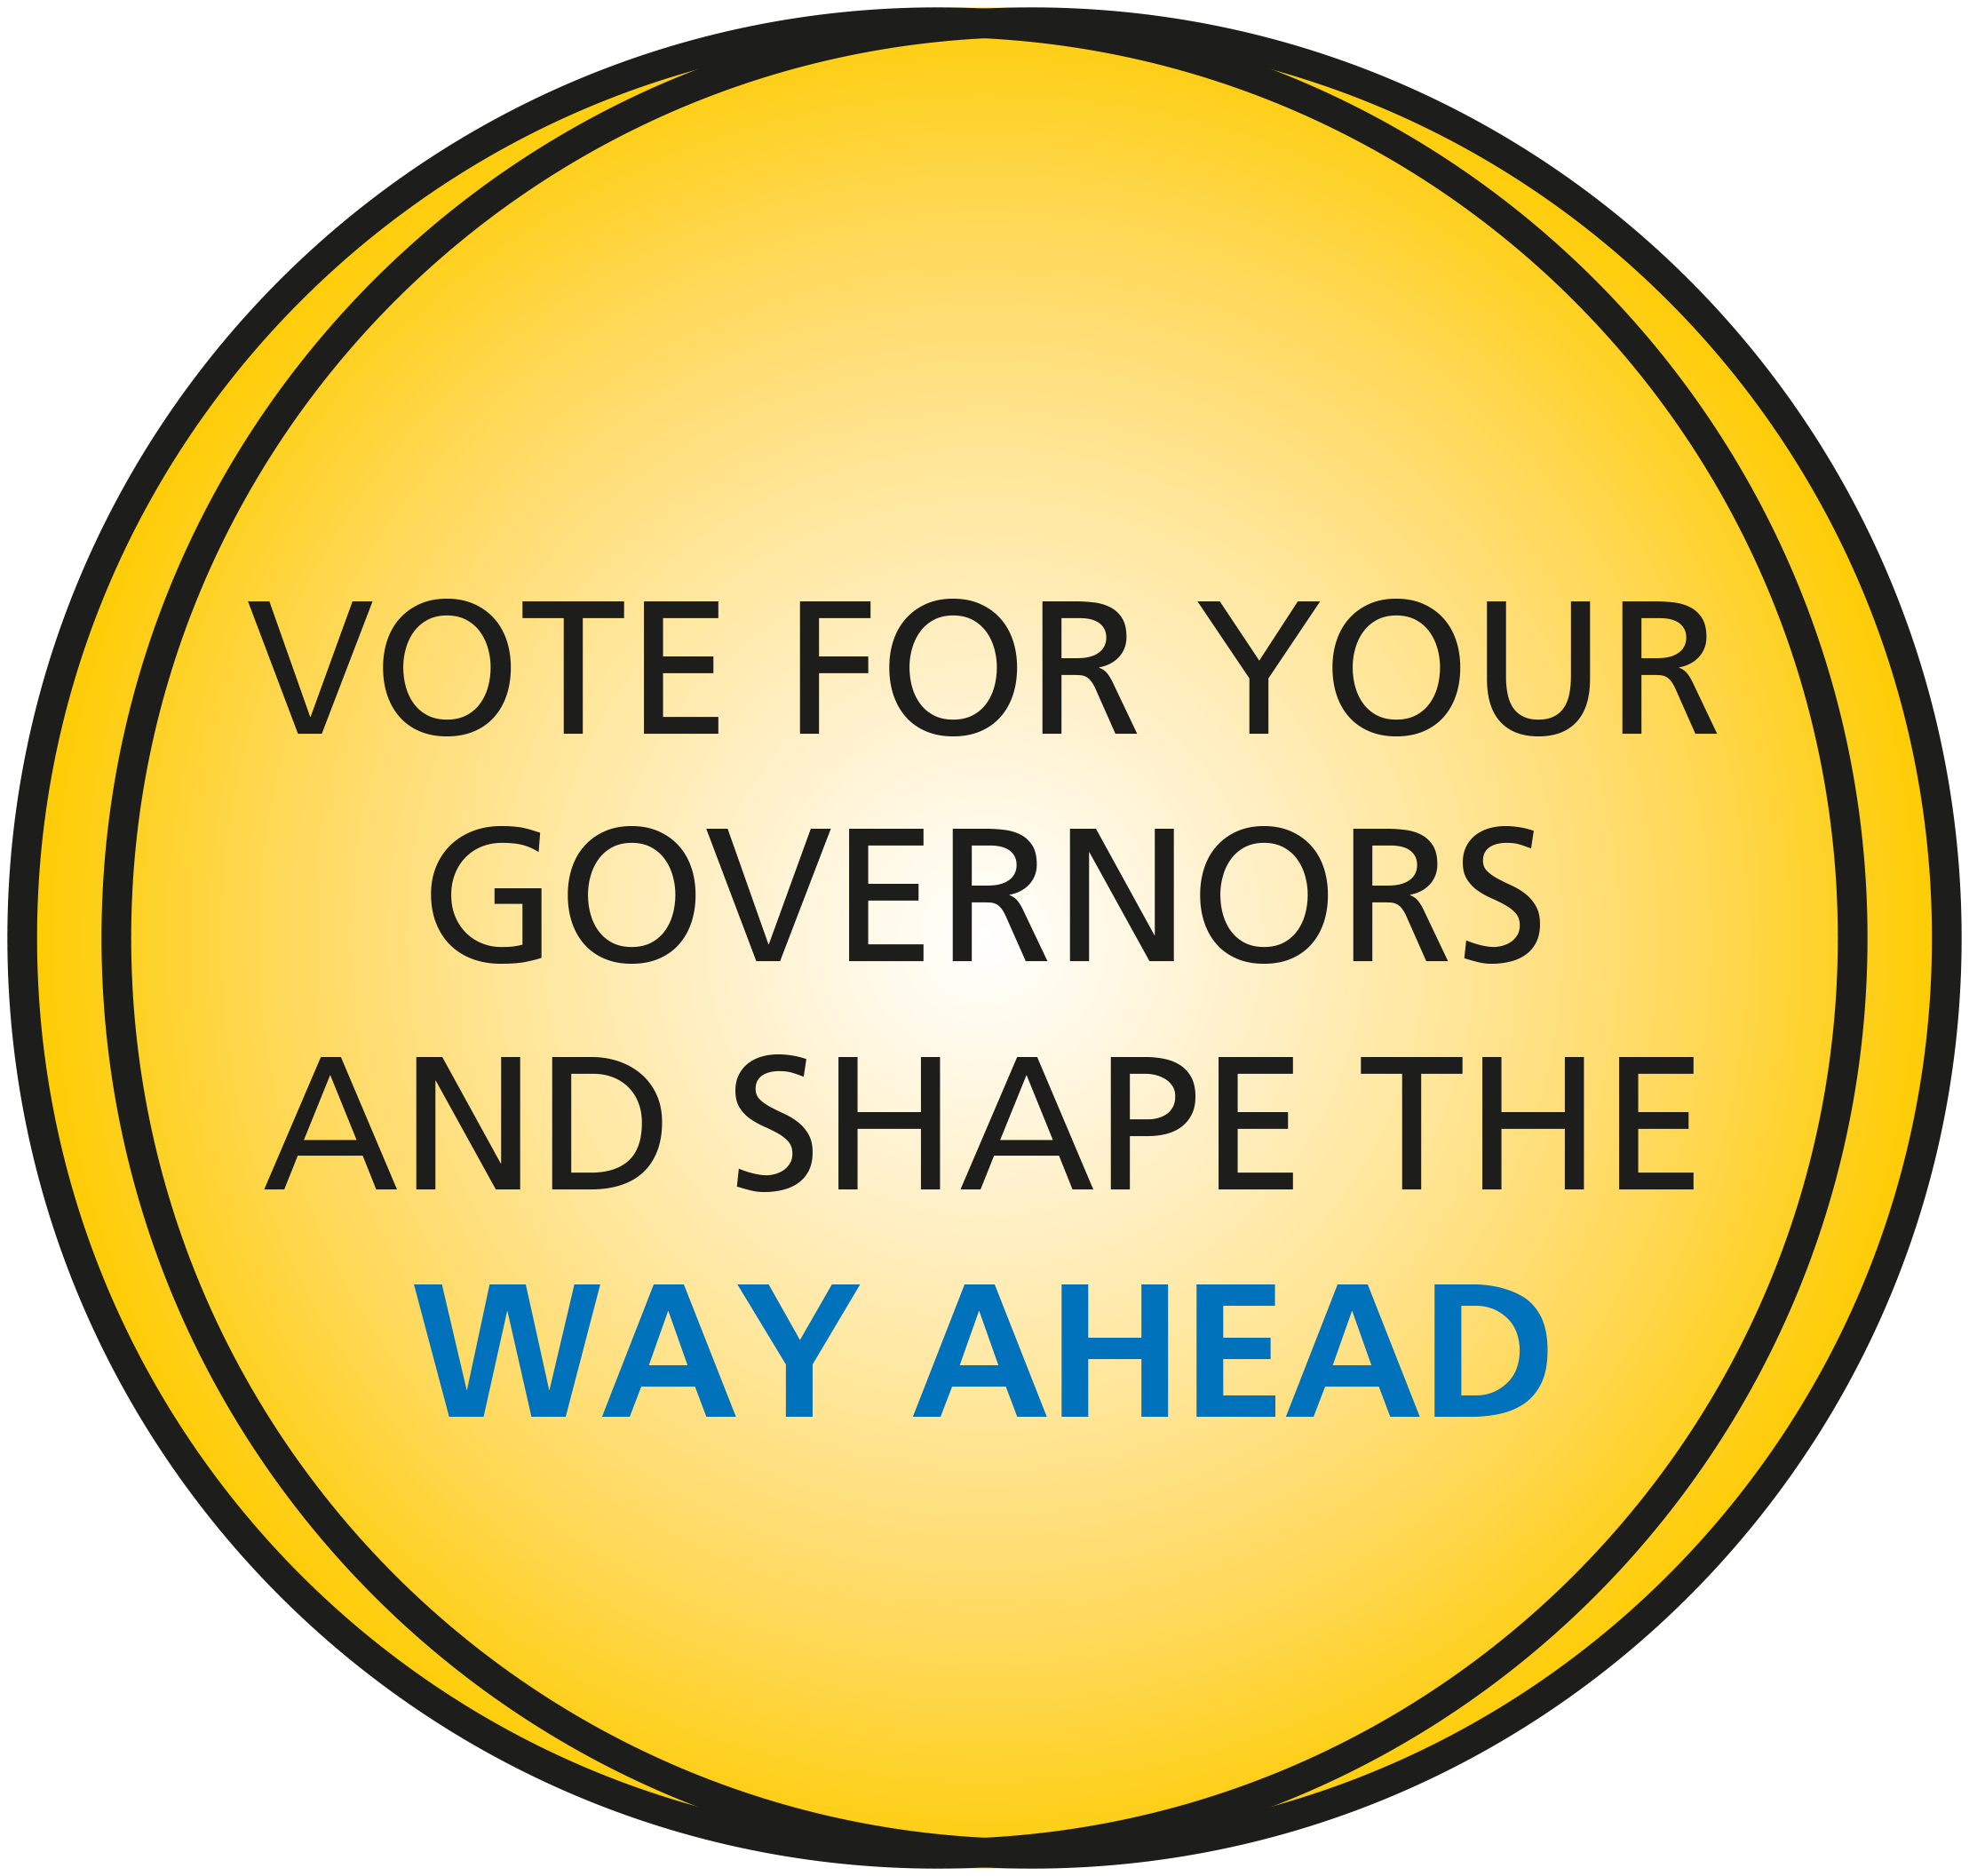 Governor elections